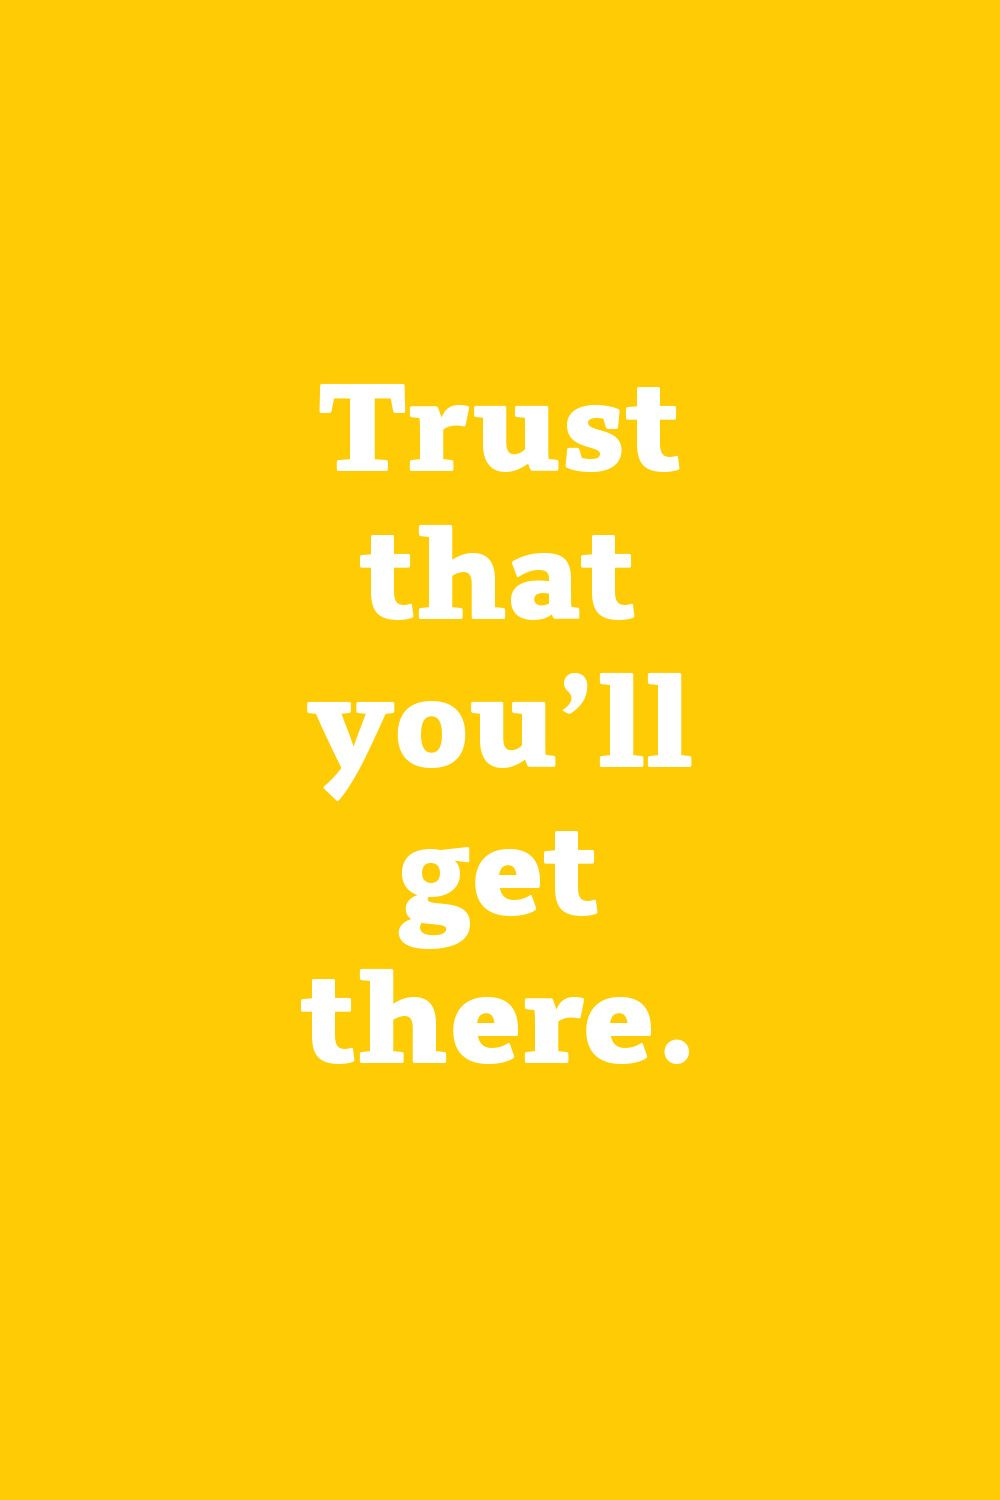 Sun Life. Your trusted partner.